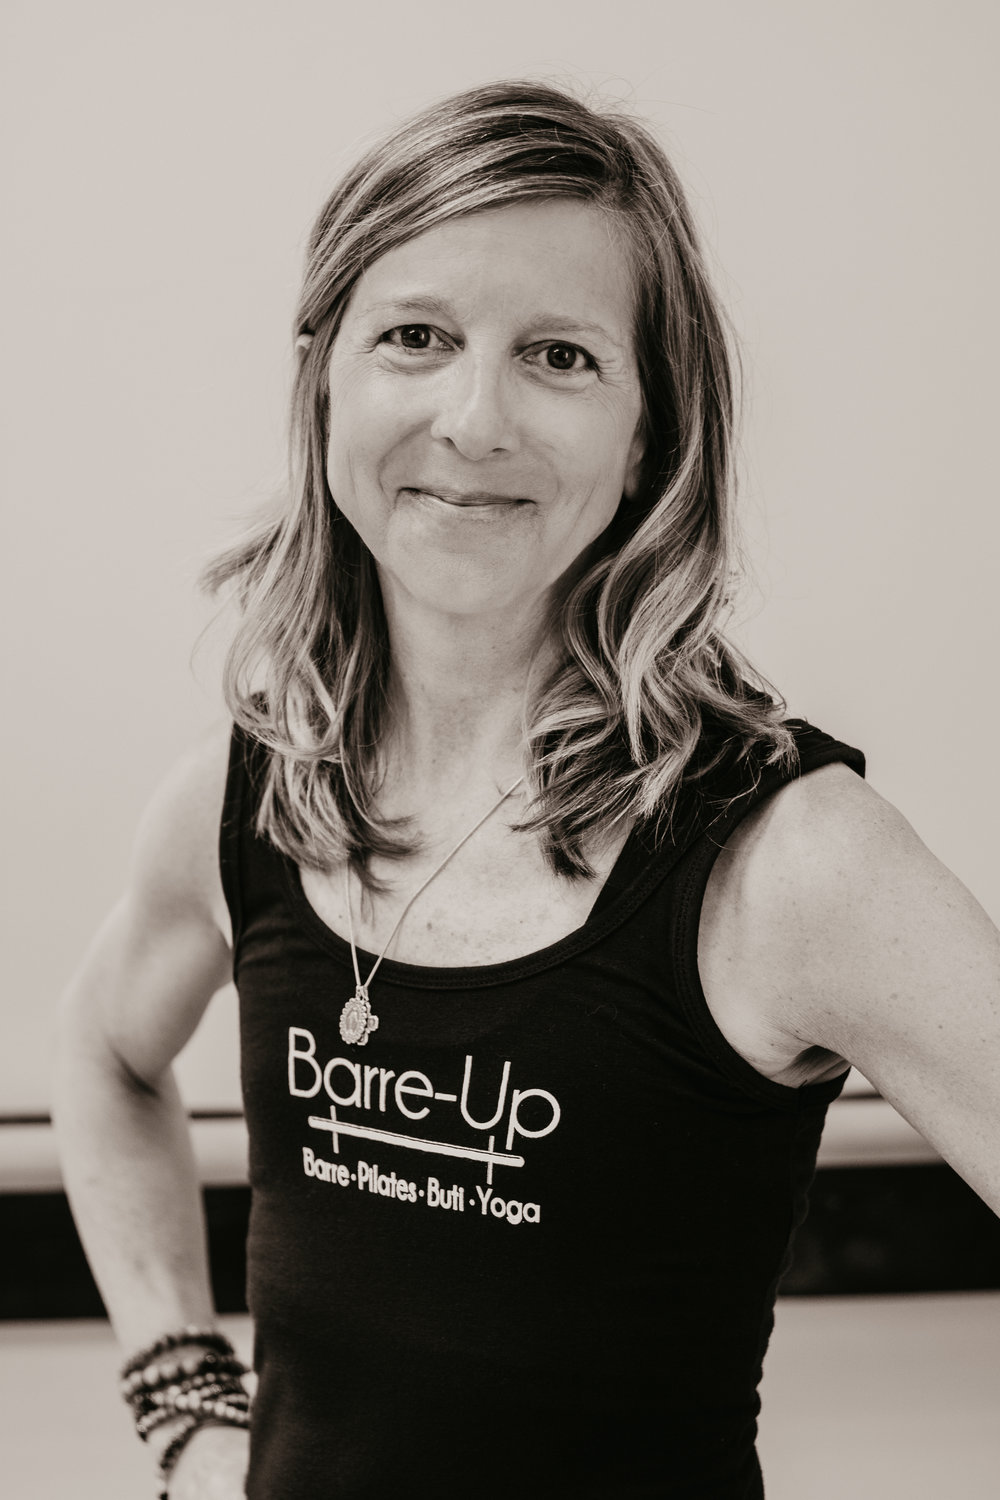 Elisabeth G. - A recent yoga-holic, Elisabeth considers Barre-Up as a second home and inspiration for her to become an instructor. She most enjoys the energy, friendly and accepting environment, and mental indulgence from the workout and classes. She has also greatly broadened her music knowledge as an instructor. Elisabeth is RYT 200 and Buti Yoga certified. She teaches Buti, Vinyasa, and Yin Yoga.Aside from yoga, Elisabeth keeps busy working and traveling for her market research company which she started with a business partner, 14 years ago. When she is not working or practicing yoga, she can be found enjoying time her with family, bicycling with her husband, or taking every opportunity to visit her two daughters.